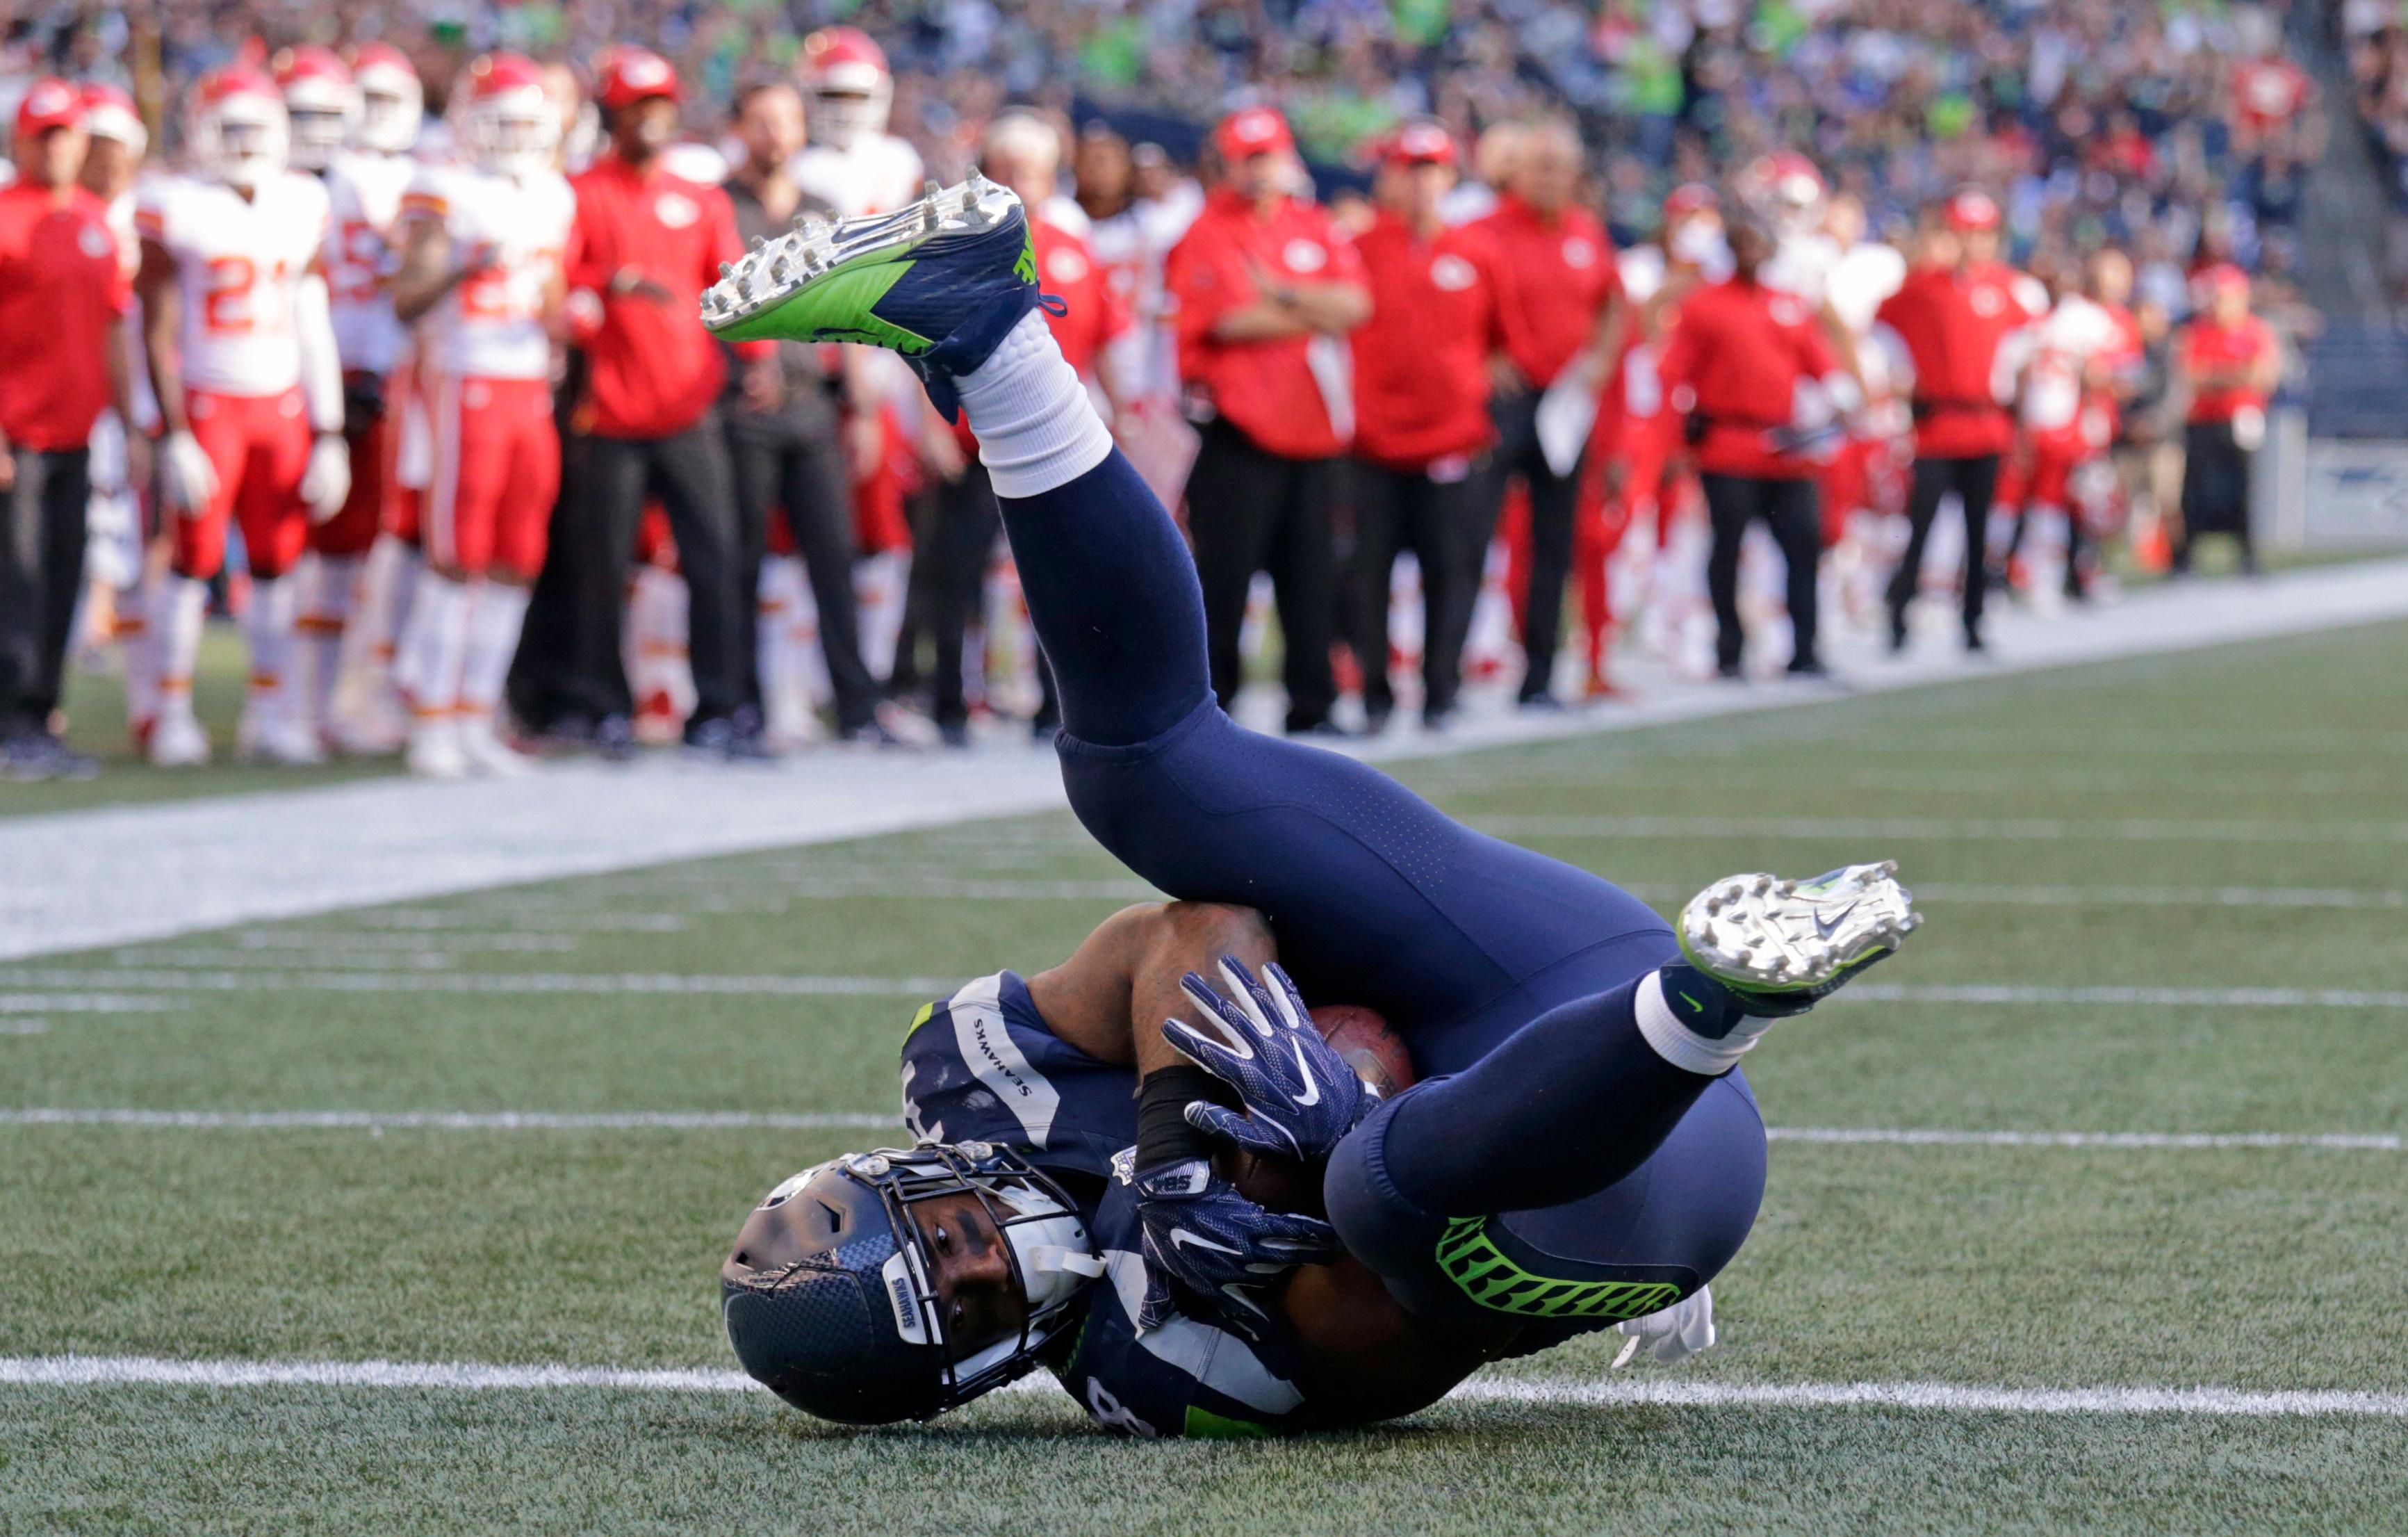 Seattle Seahawks fullback Tre Madden tumbles into the end zone for a touchdown against the Kansas City Chiefs during the first half of an NFL football preseason game, Friday, Aug. 25, 2017, in Seattle. (AP Photo/John Froschauer)